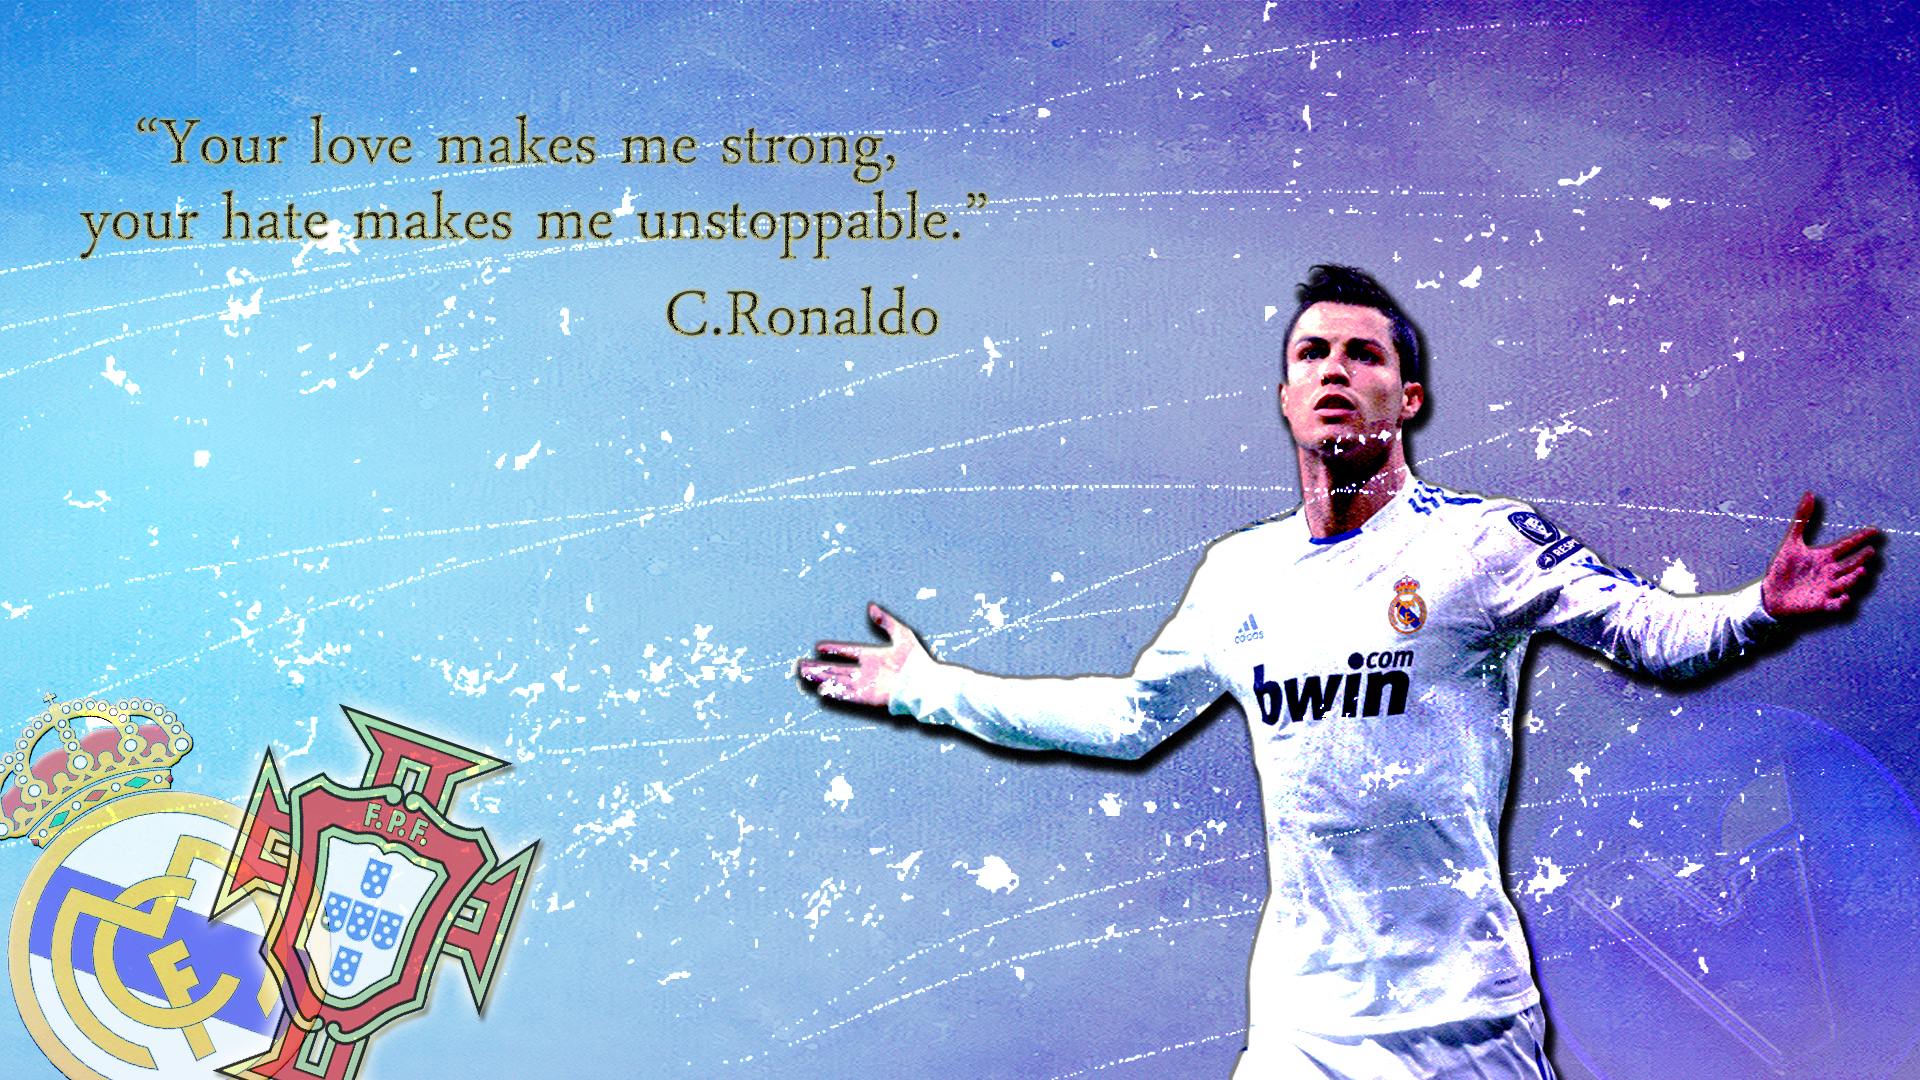 Collection of cool cristiano ronaldo wallpapers on hdwallpapers collection of cool cristiano ronaldo wallpapers on hdwallpapers 1920x1080 voltagebd Image collections